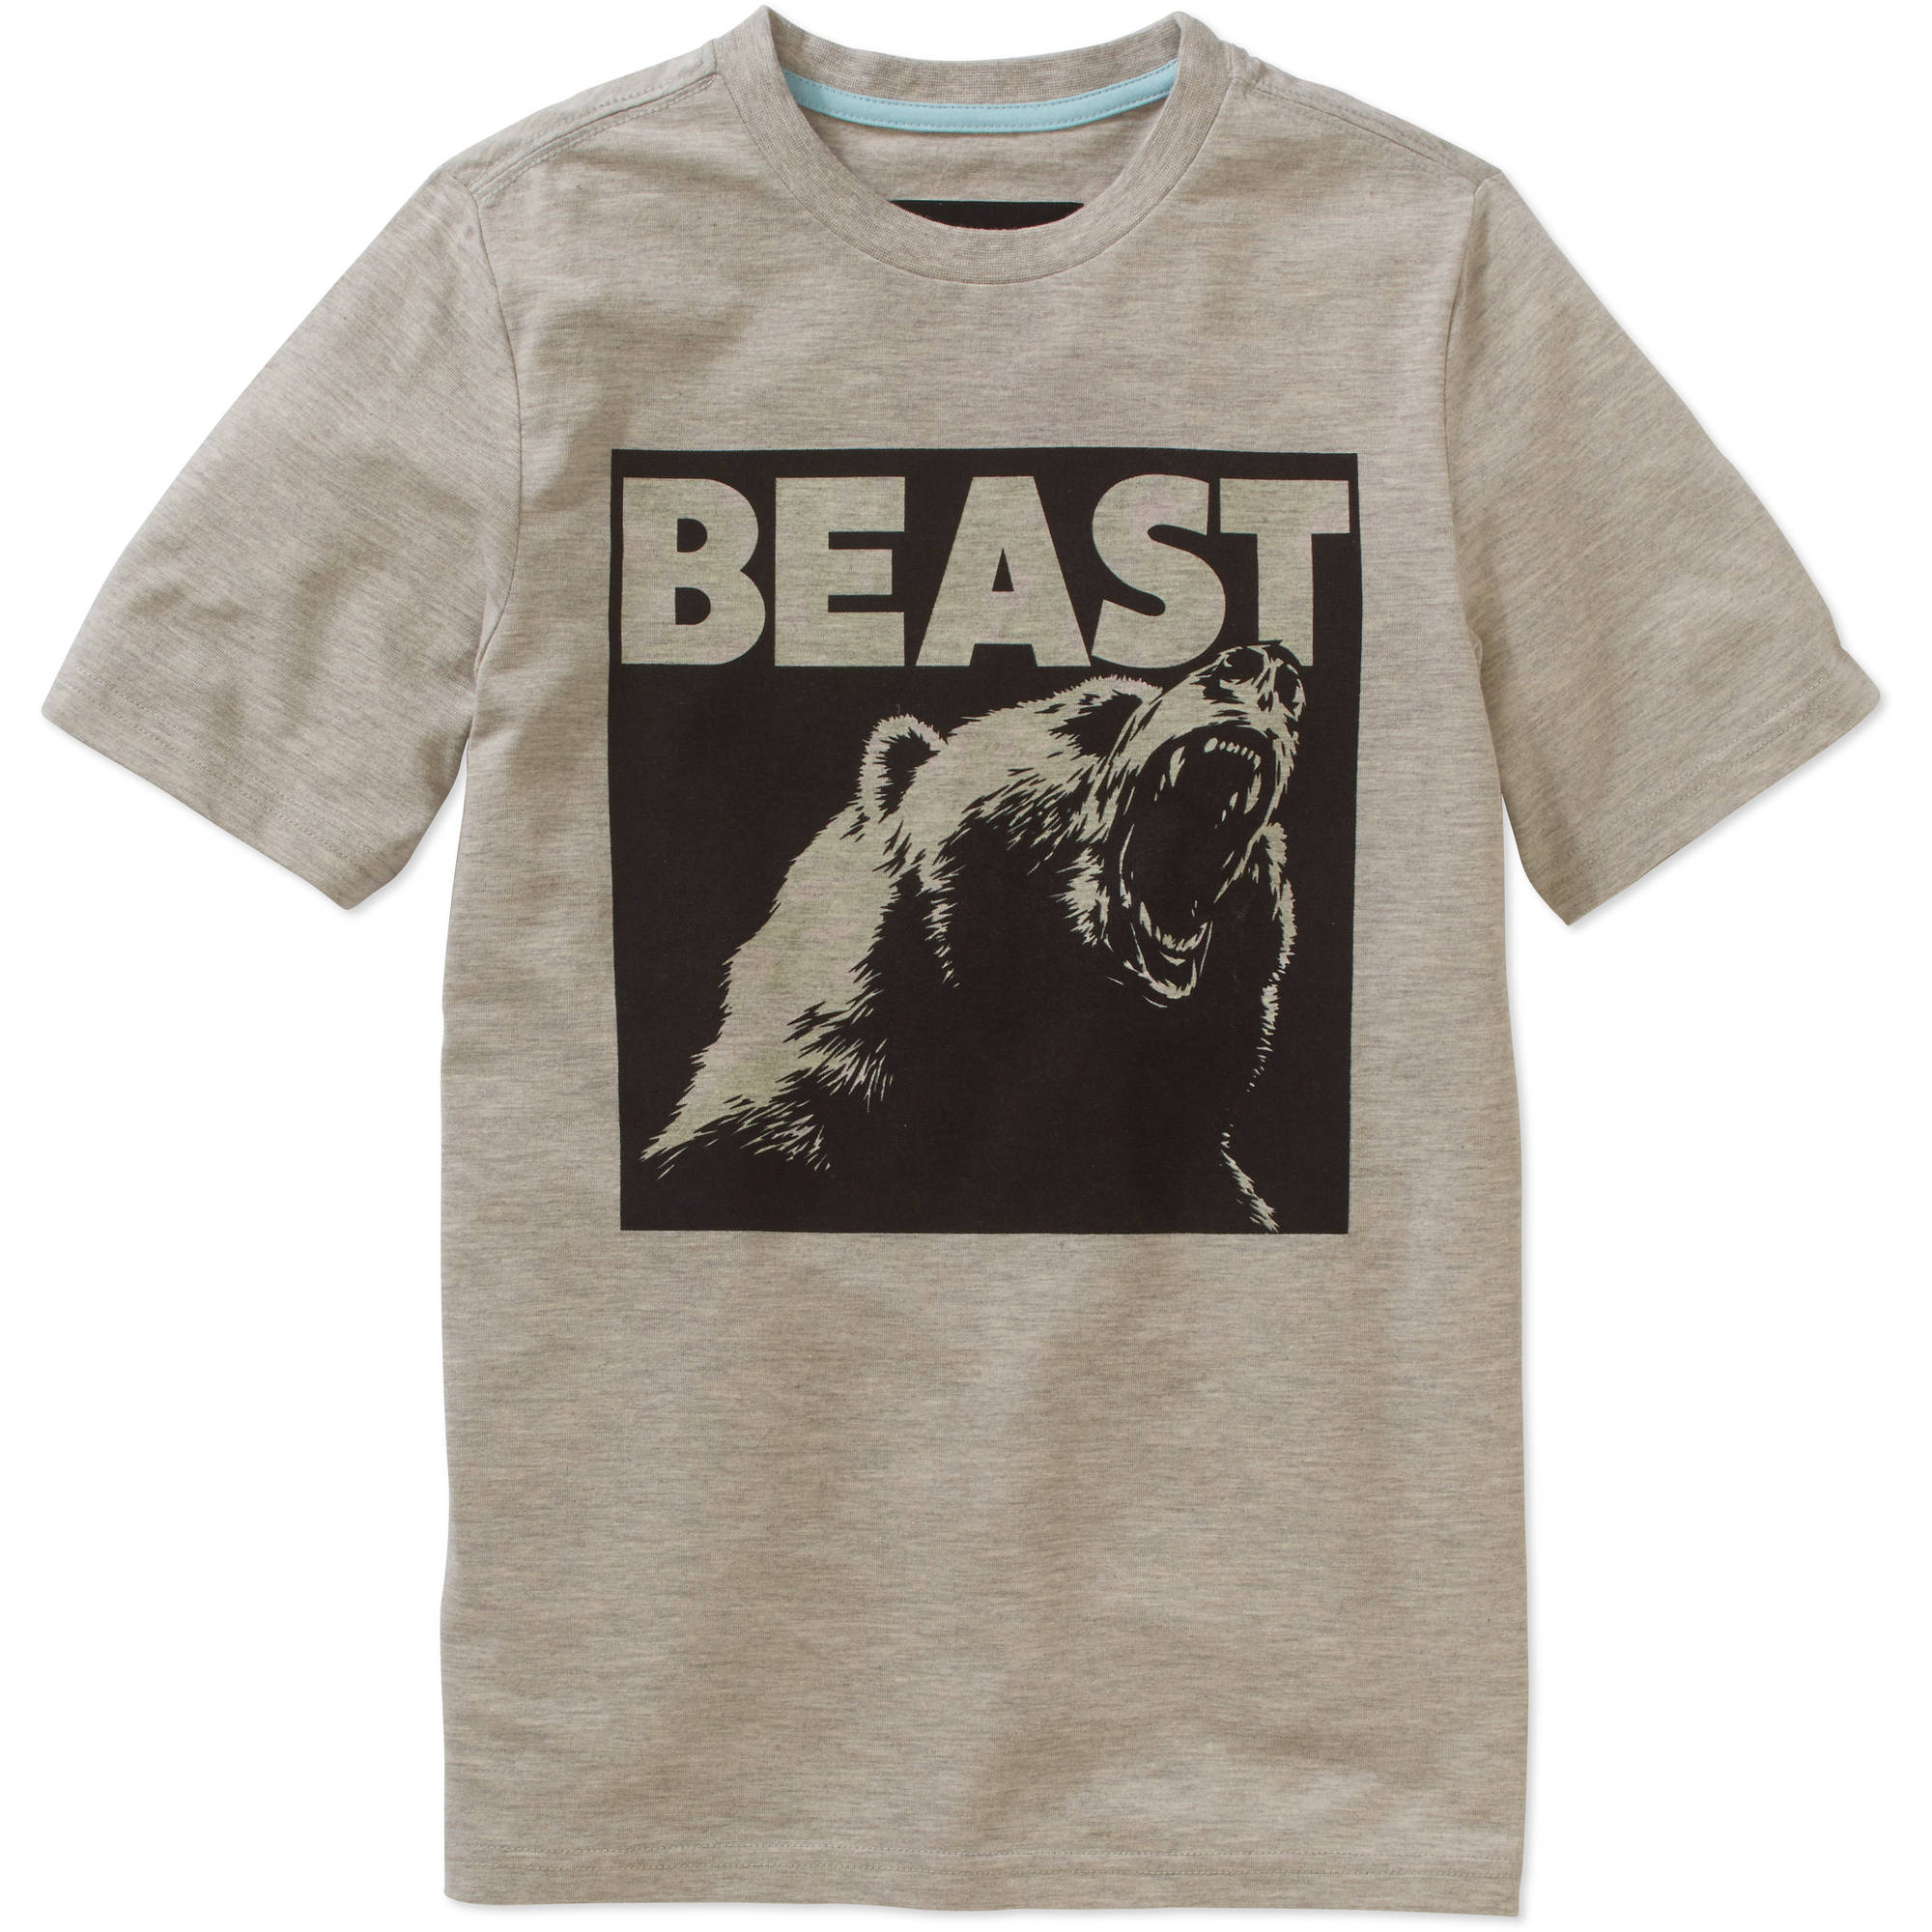 Boys' Beast Short Sleeve Color Change T-Shirt